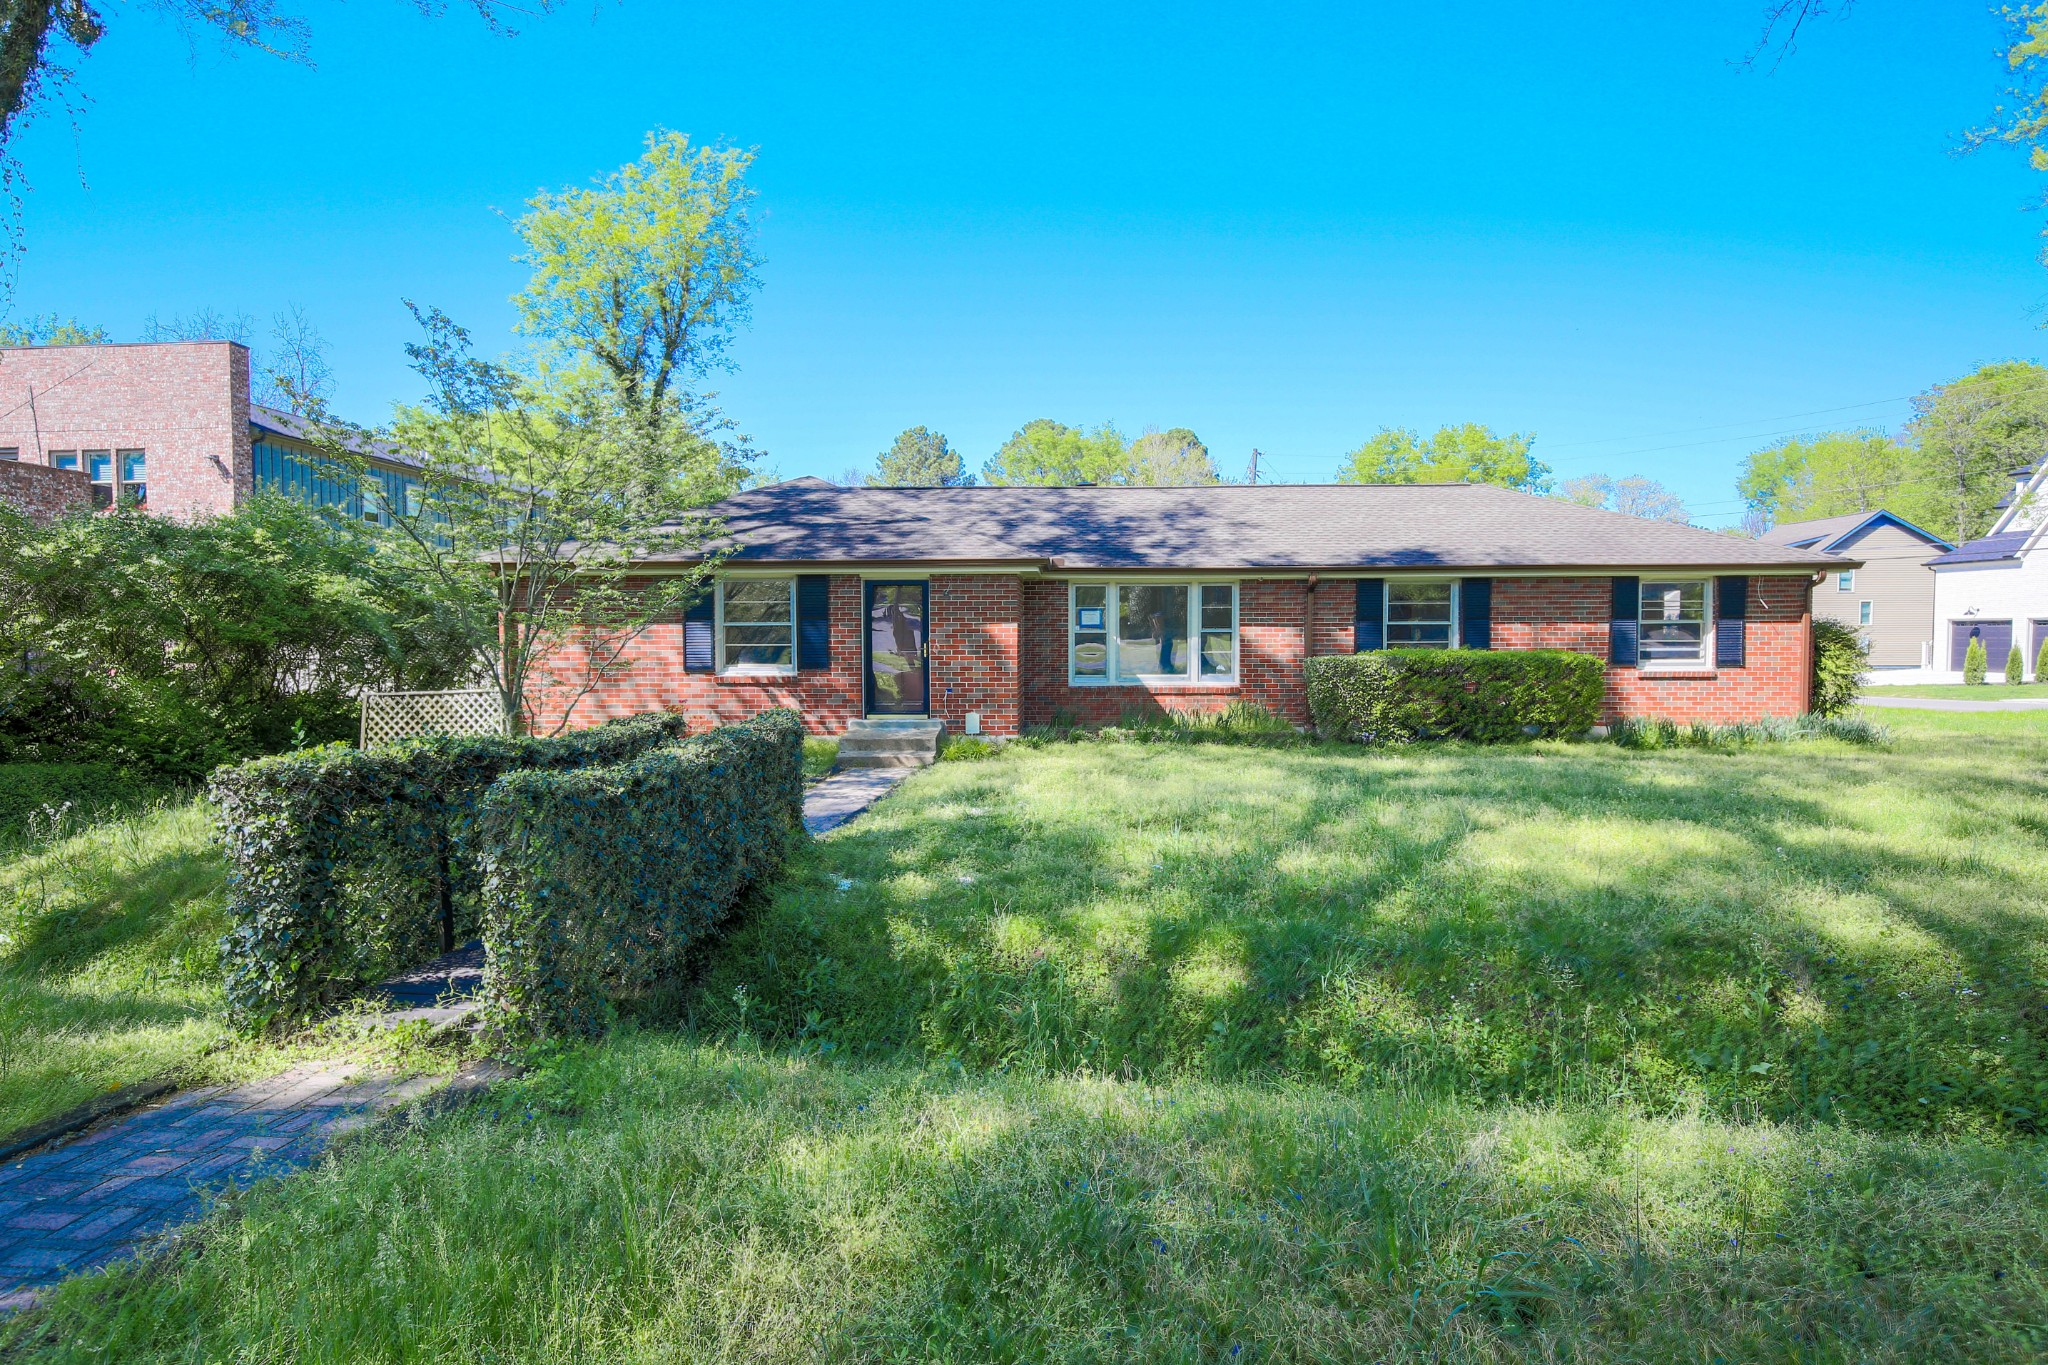 955 Caldwell Ln Property Photo - Nashville, TN real estate listing